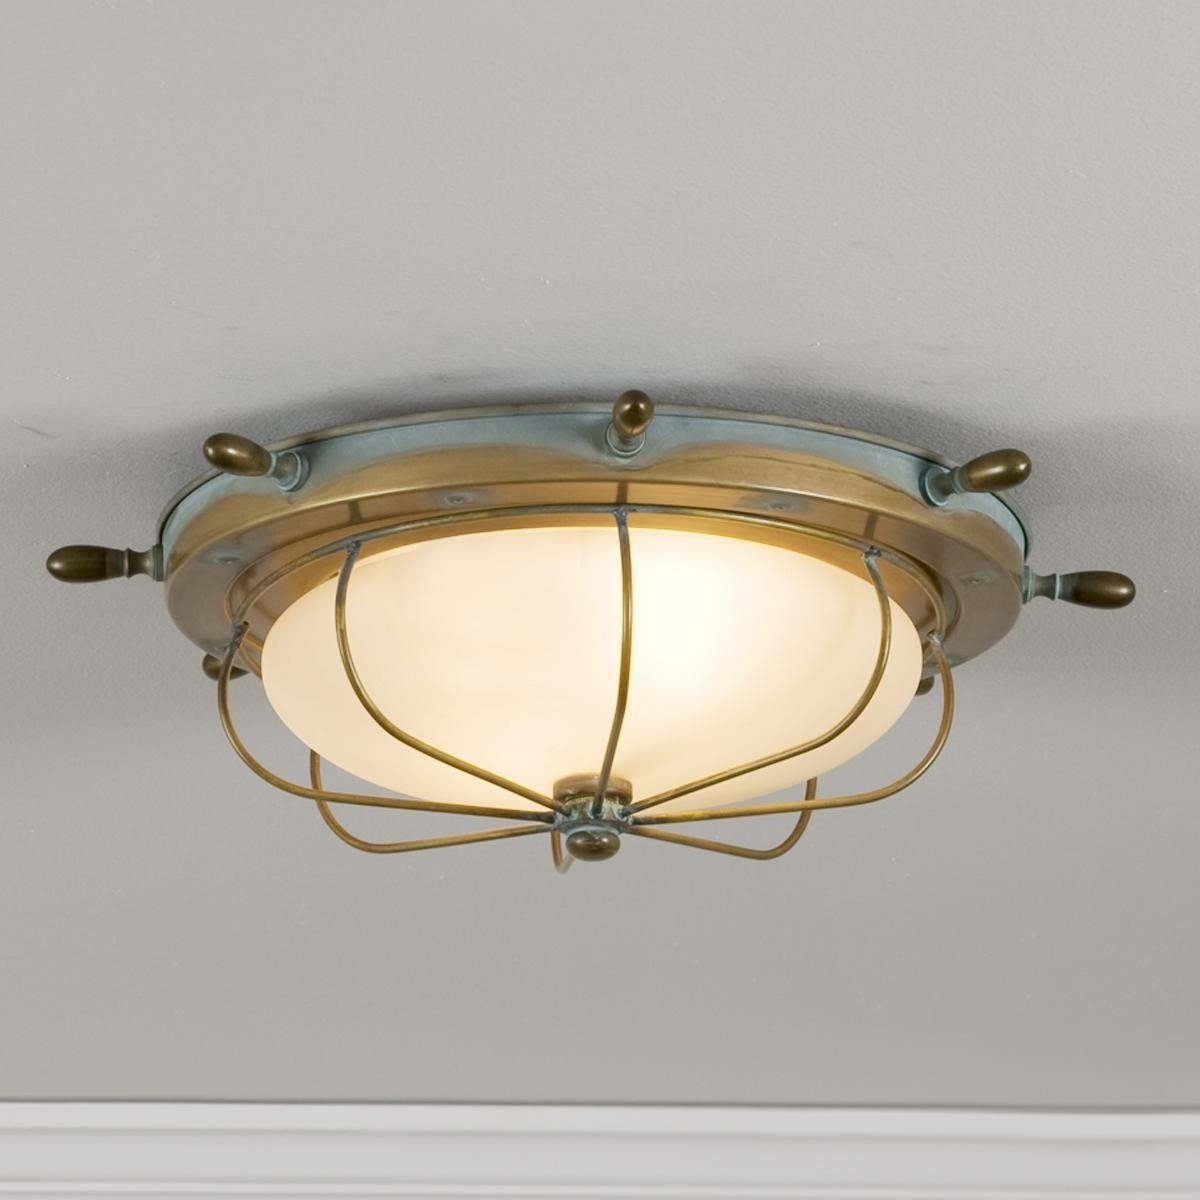 Captain's Ceiling Light | Ceiling Lights, Ceilings And Lights In Brass Outdoor Ceiling Lights (#6 of 15)